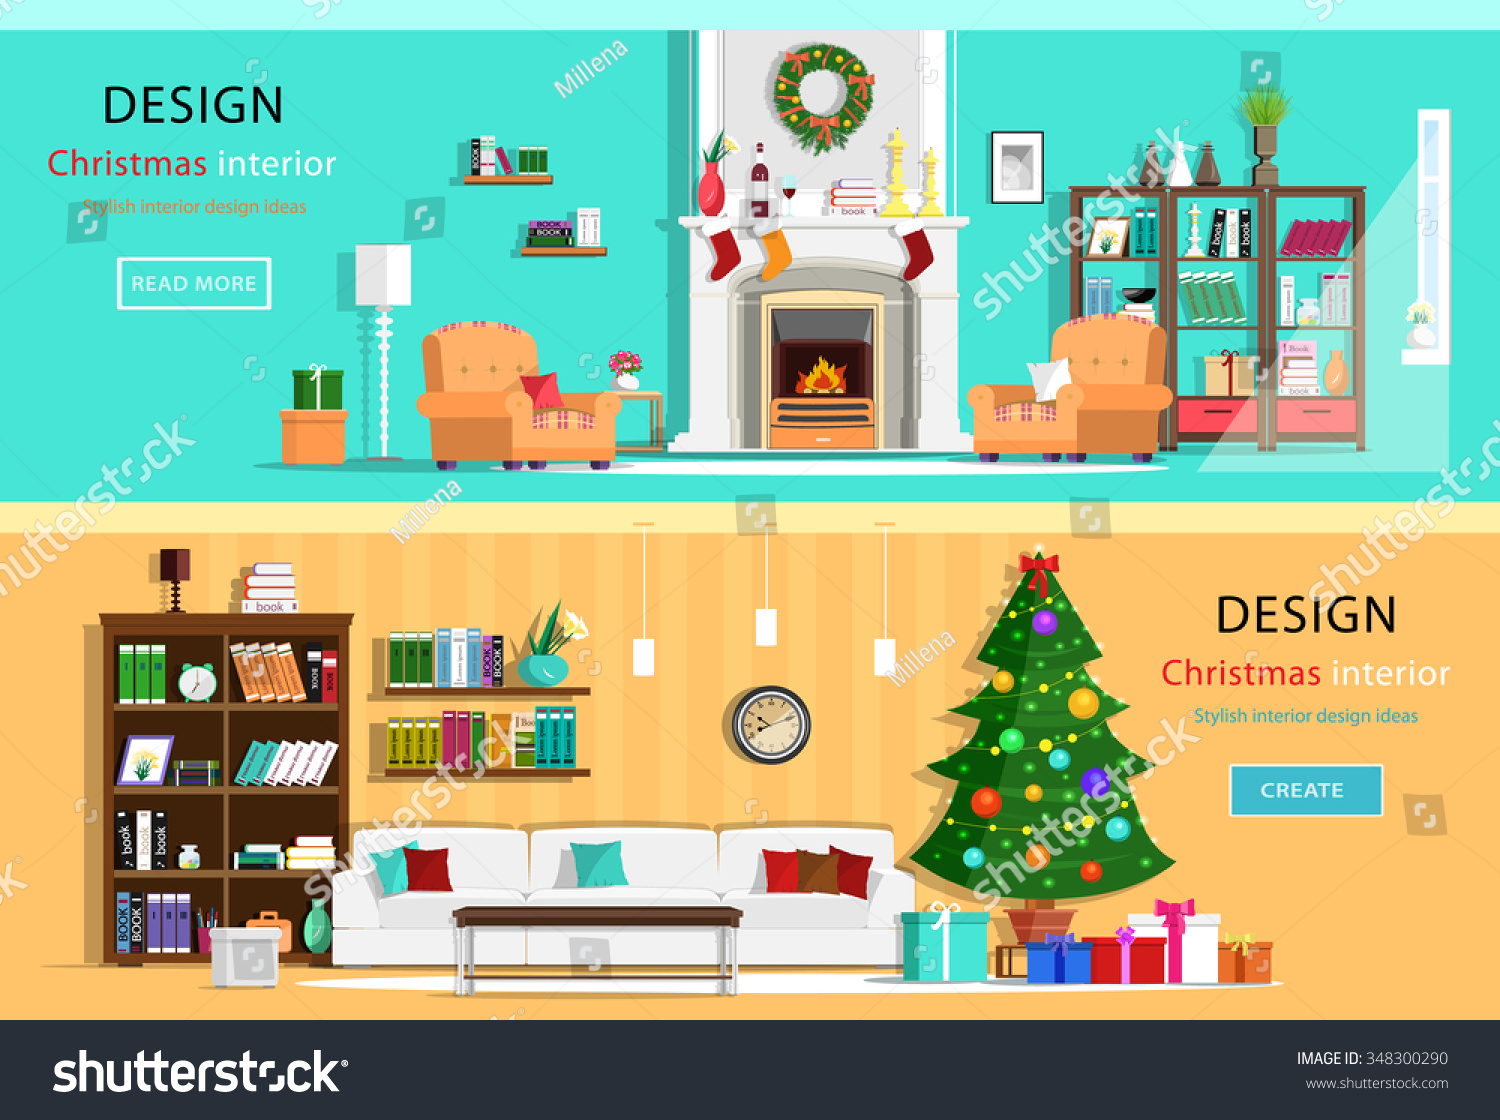 Set Of Colorful Holiday Interior Design In House Rooms With Furniture Icons Wreath Christmas